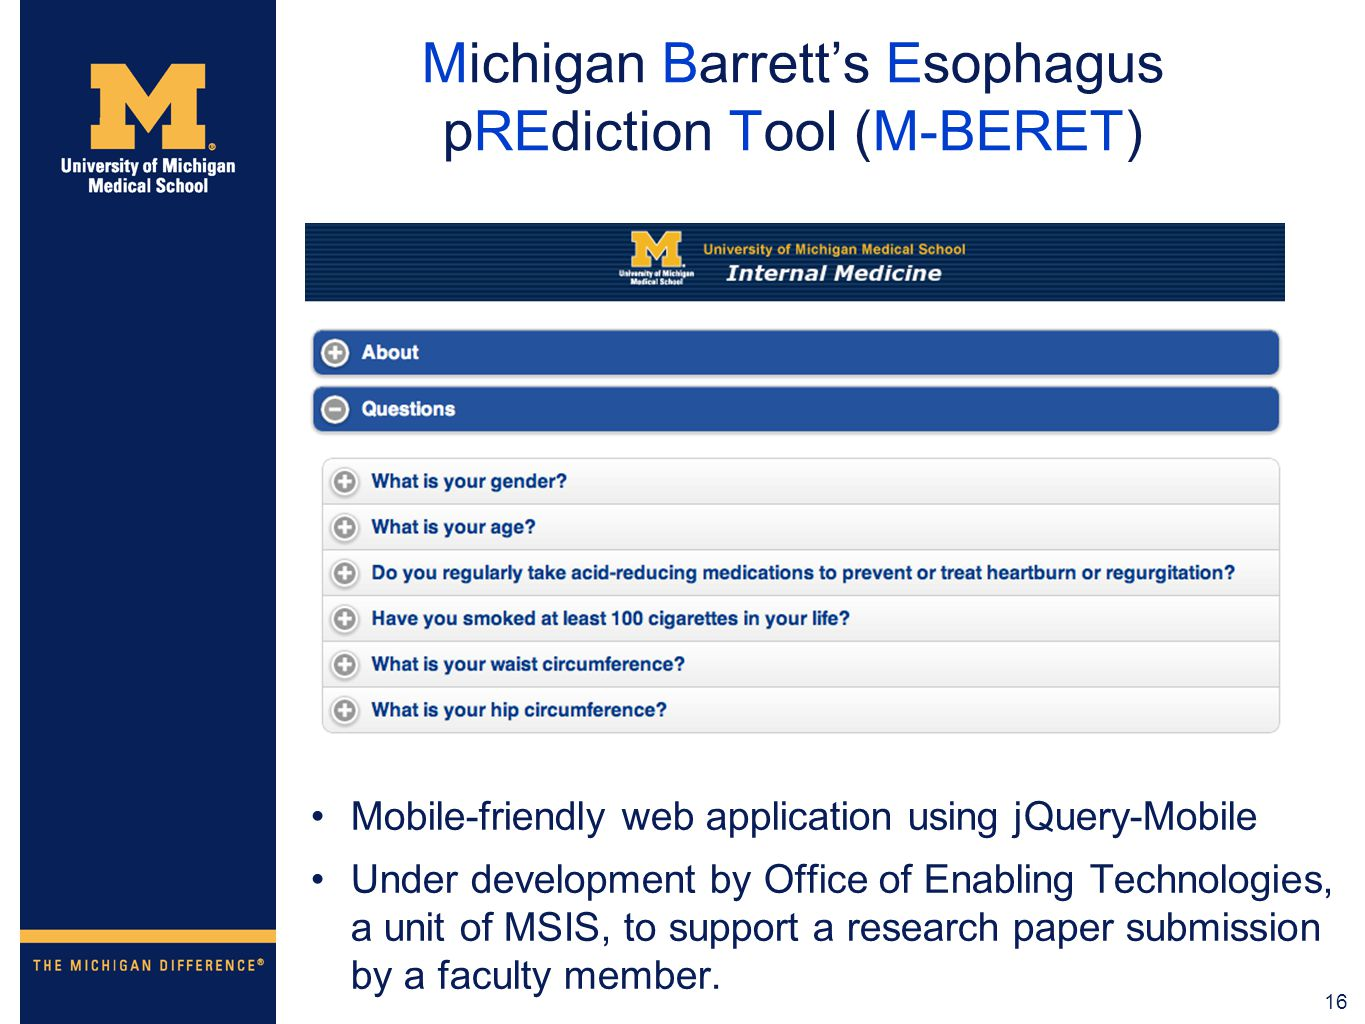 Developing Mobile Apps at the University of Michigan Medical